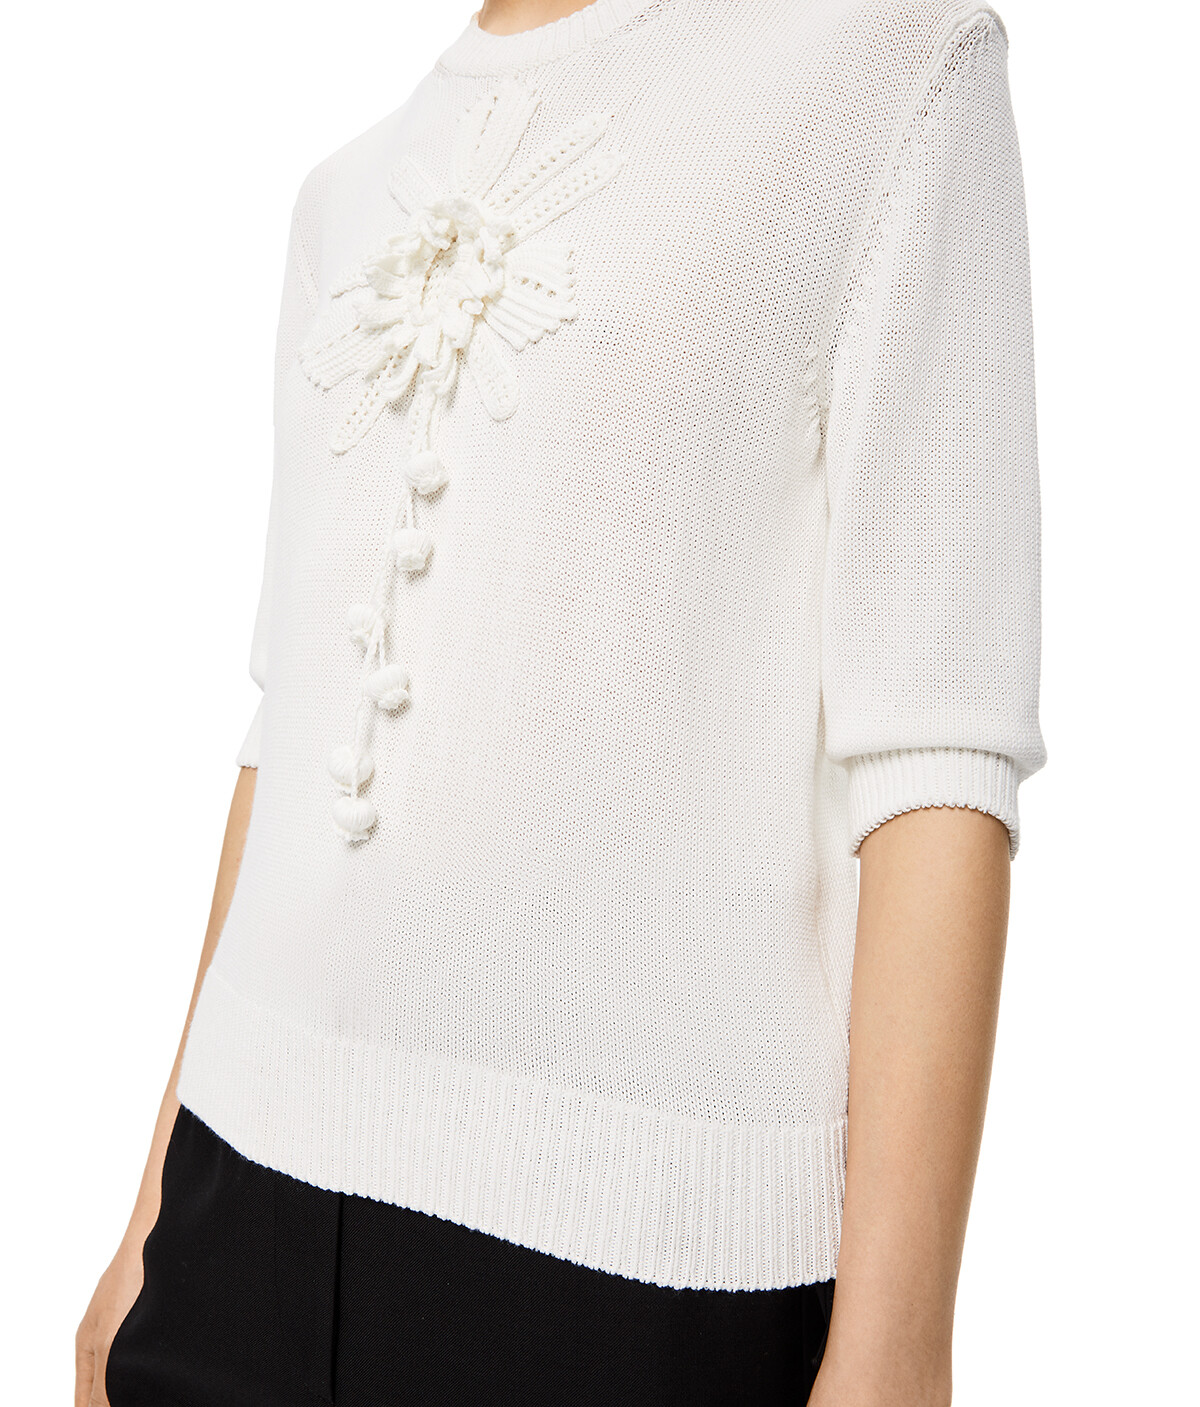 LOEWE Embroidered Short Sweater White front